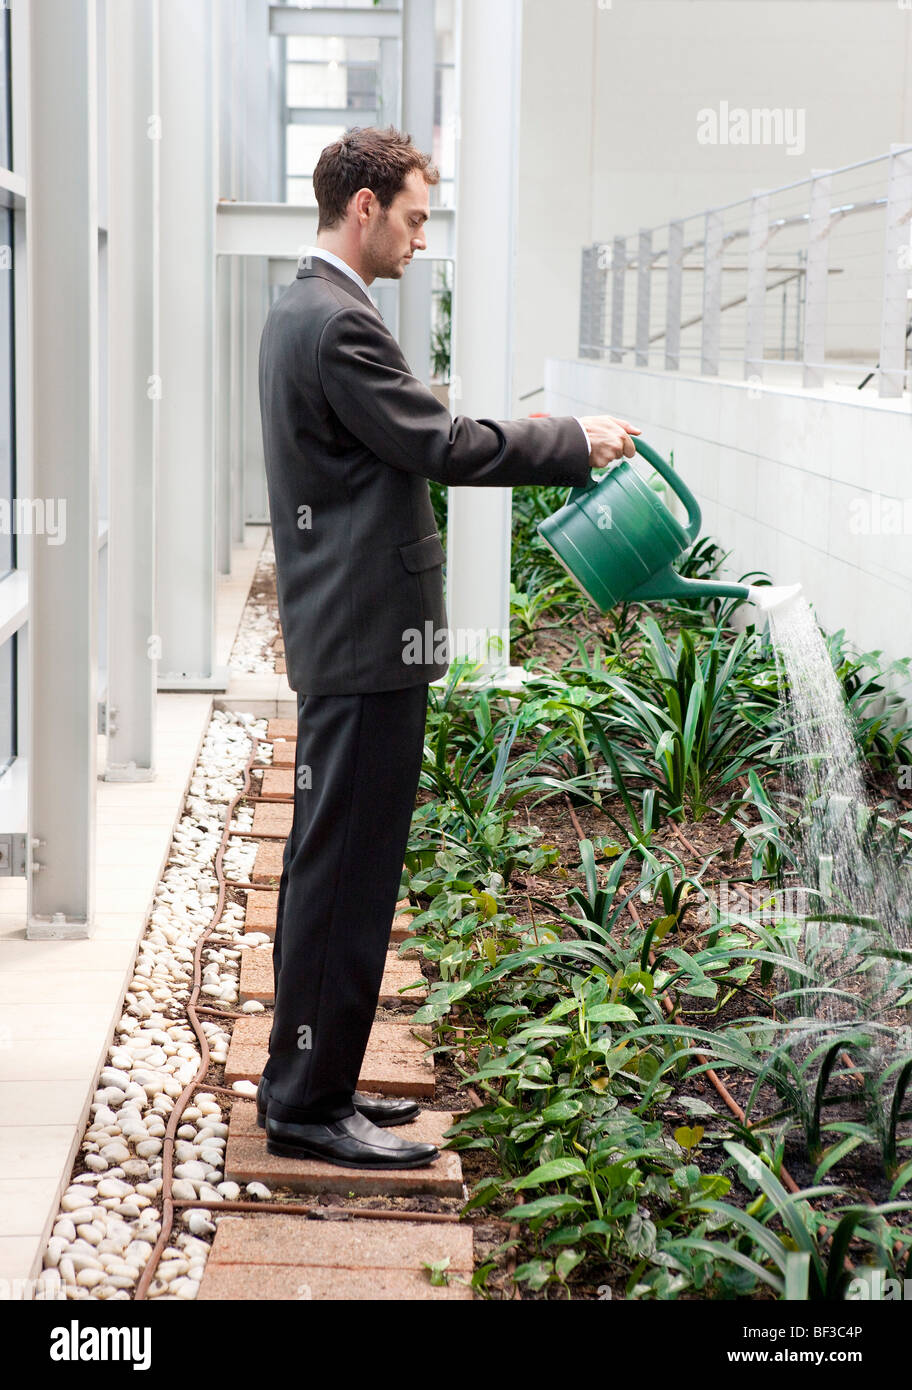 Business Man Watering Plants At Office Stock Photo 26505606 Alamy